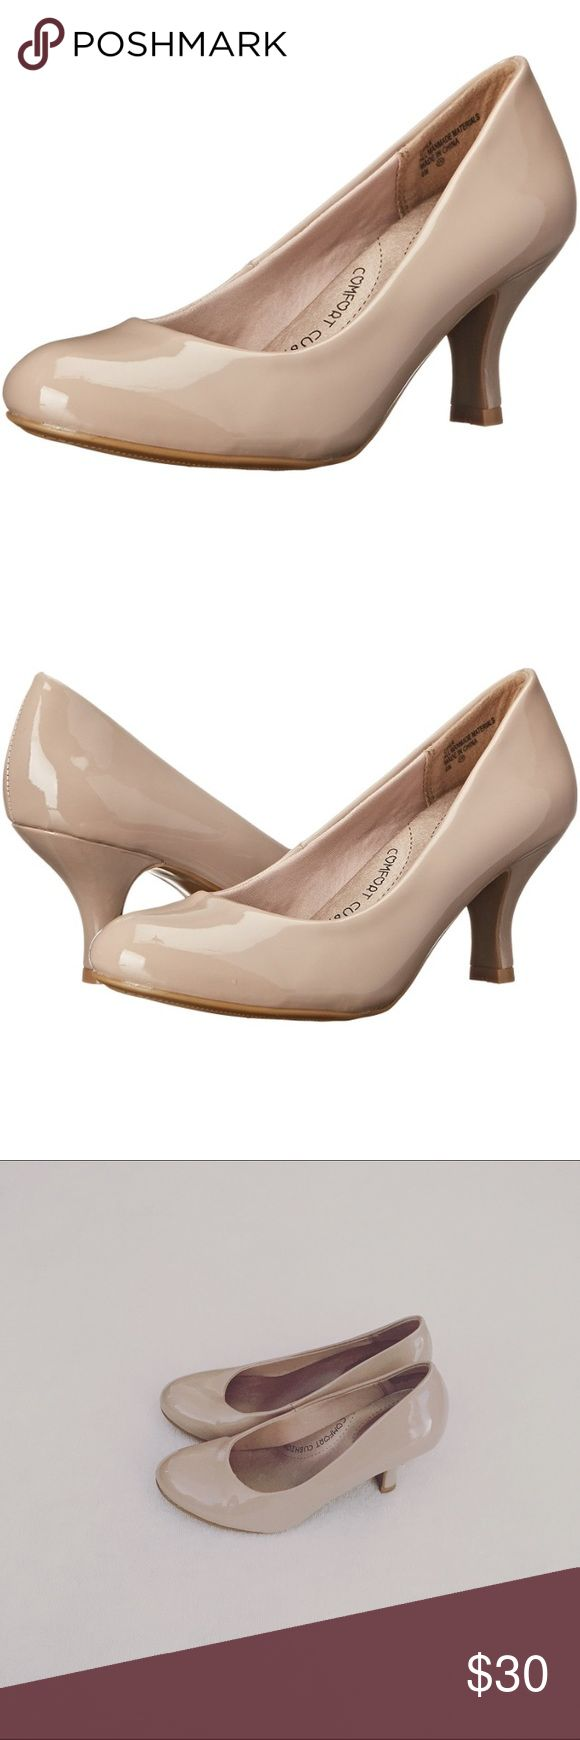 Jellypop 'Cayla' Mid Heel Dress Pumps Super comfortable With padded insole & arch support Good condition  Size: 5.5 Nude patent Flaw shown in 4th pic Cross posted on Mercarí Jellypop Shoes Heels